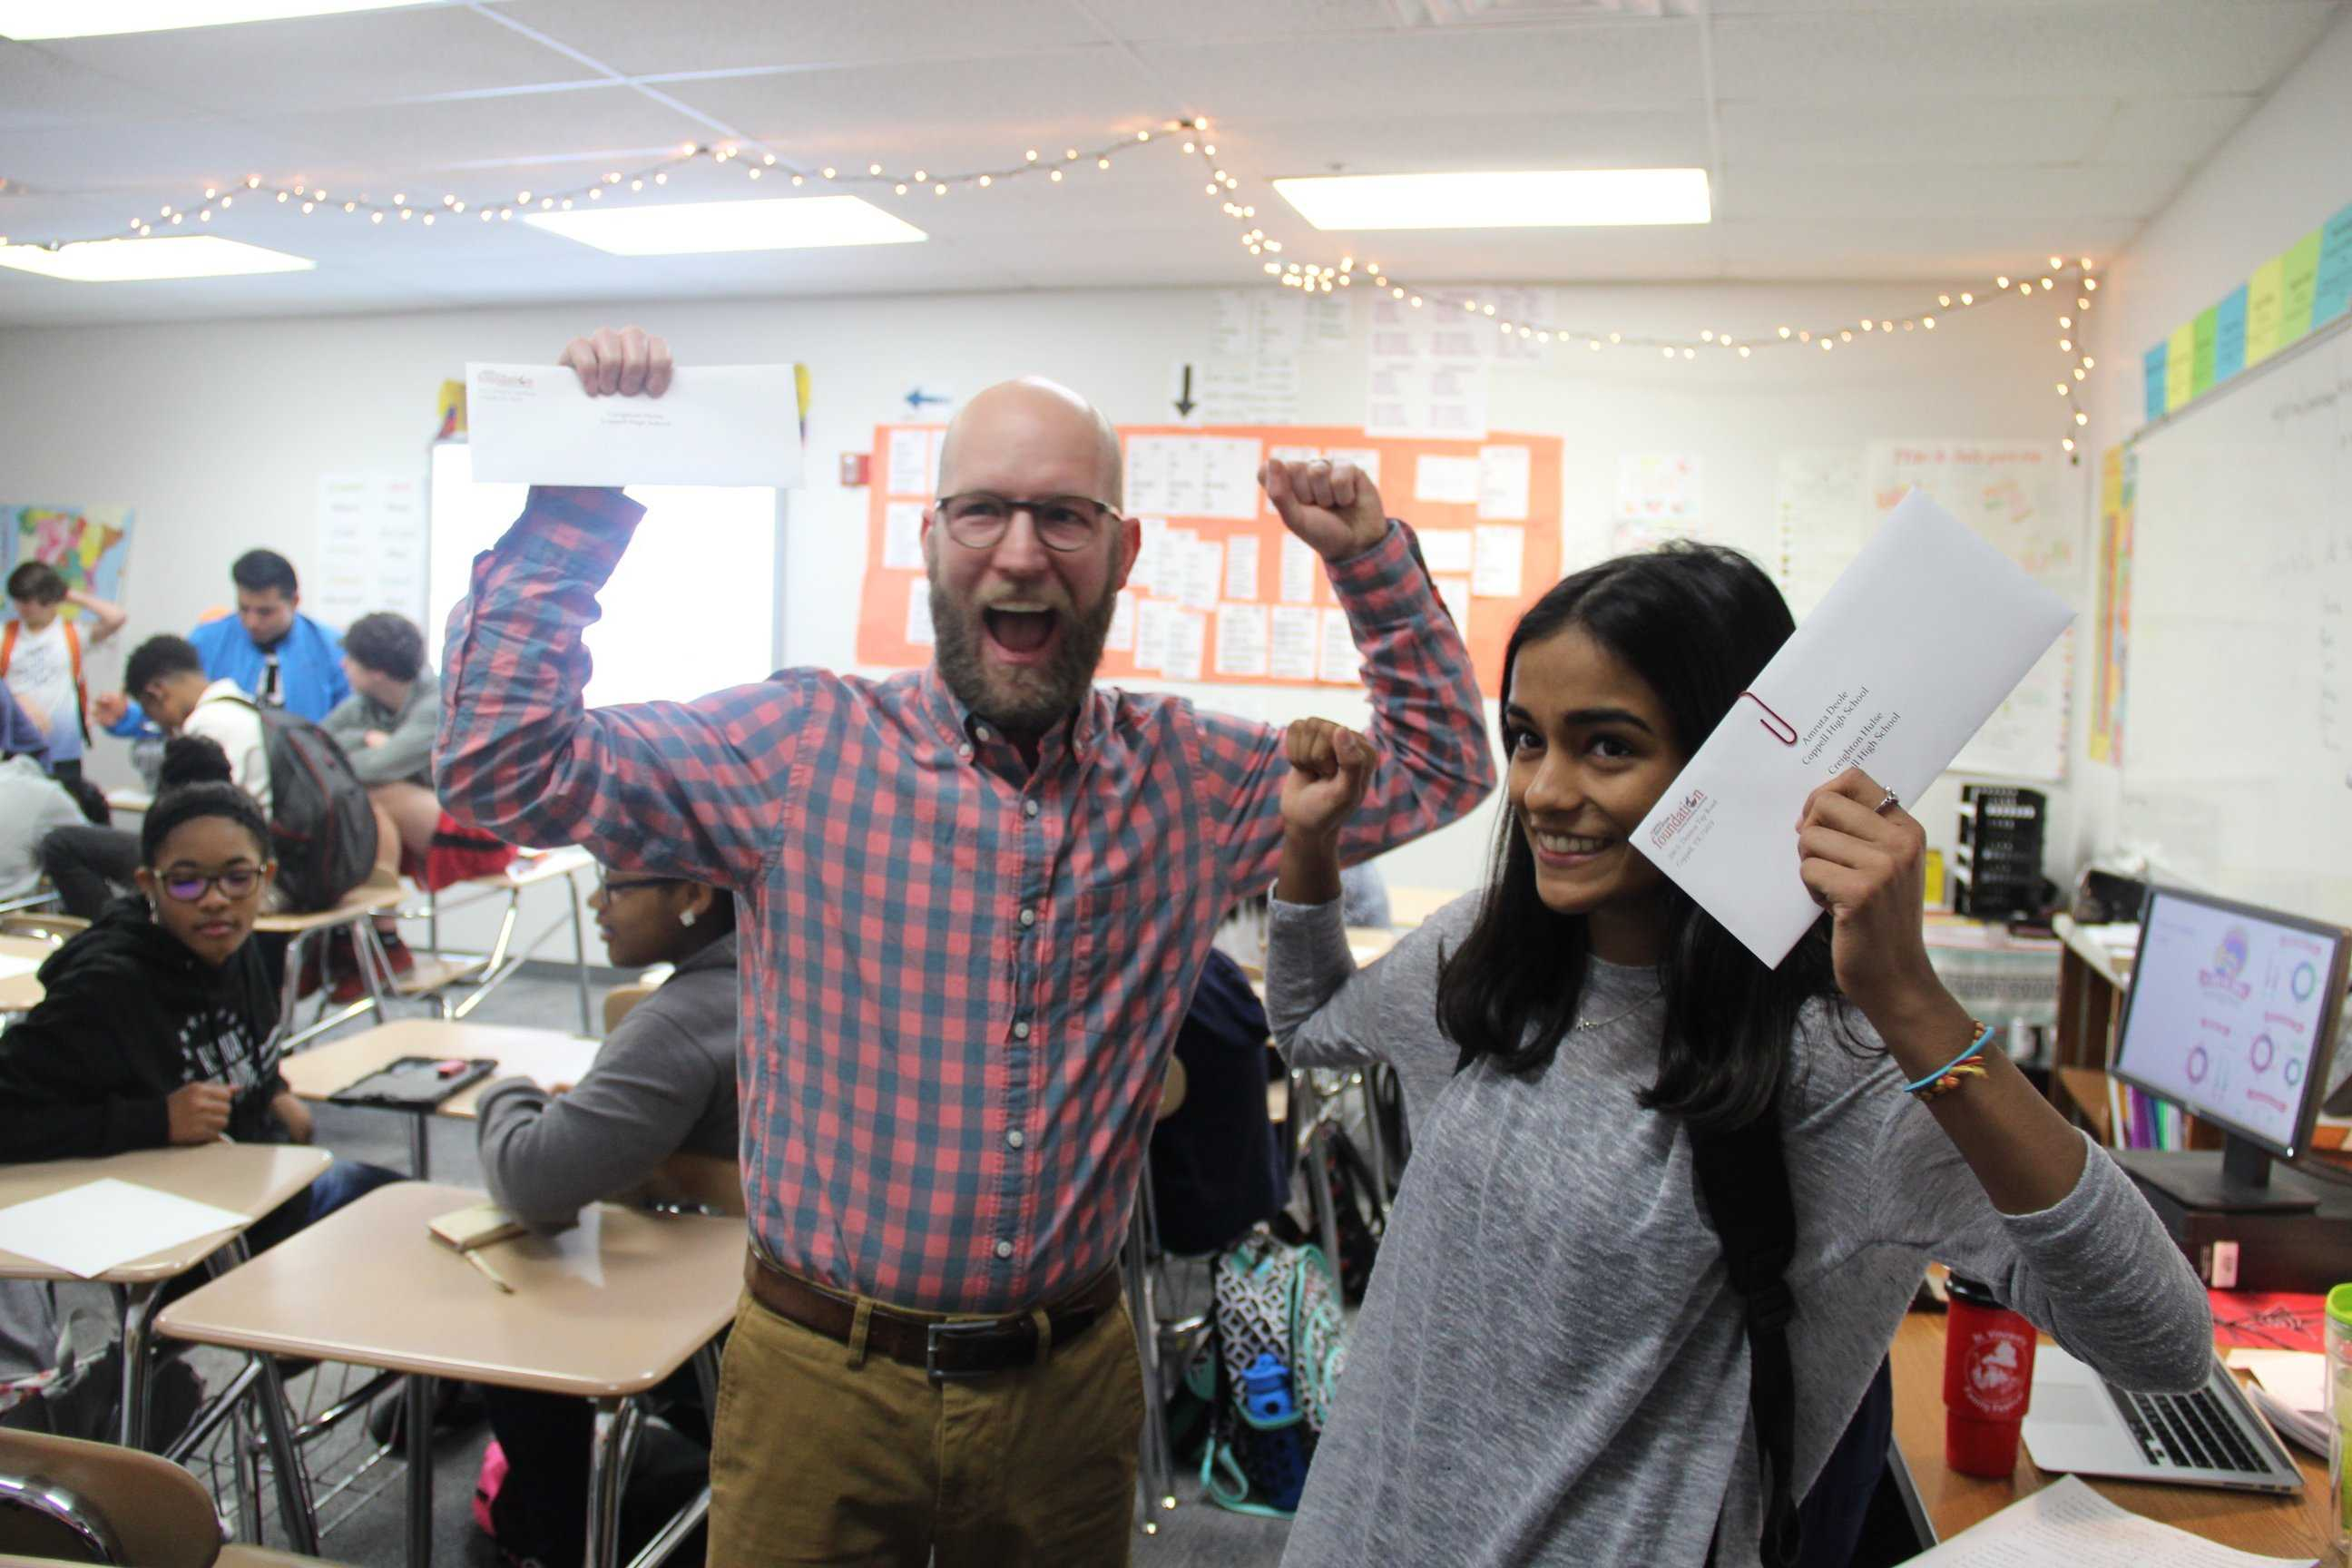 Coppell High School senior Amruta Deole surprises CHS IB Spanish teacher Creighton Hulse with an invitation to the Coppell Education Foundation Academic Recognition Banquet on Thursday. Seniors ranked in the top five percent were able to select one teacher who has impacted their learning to accompany them on April 25.